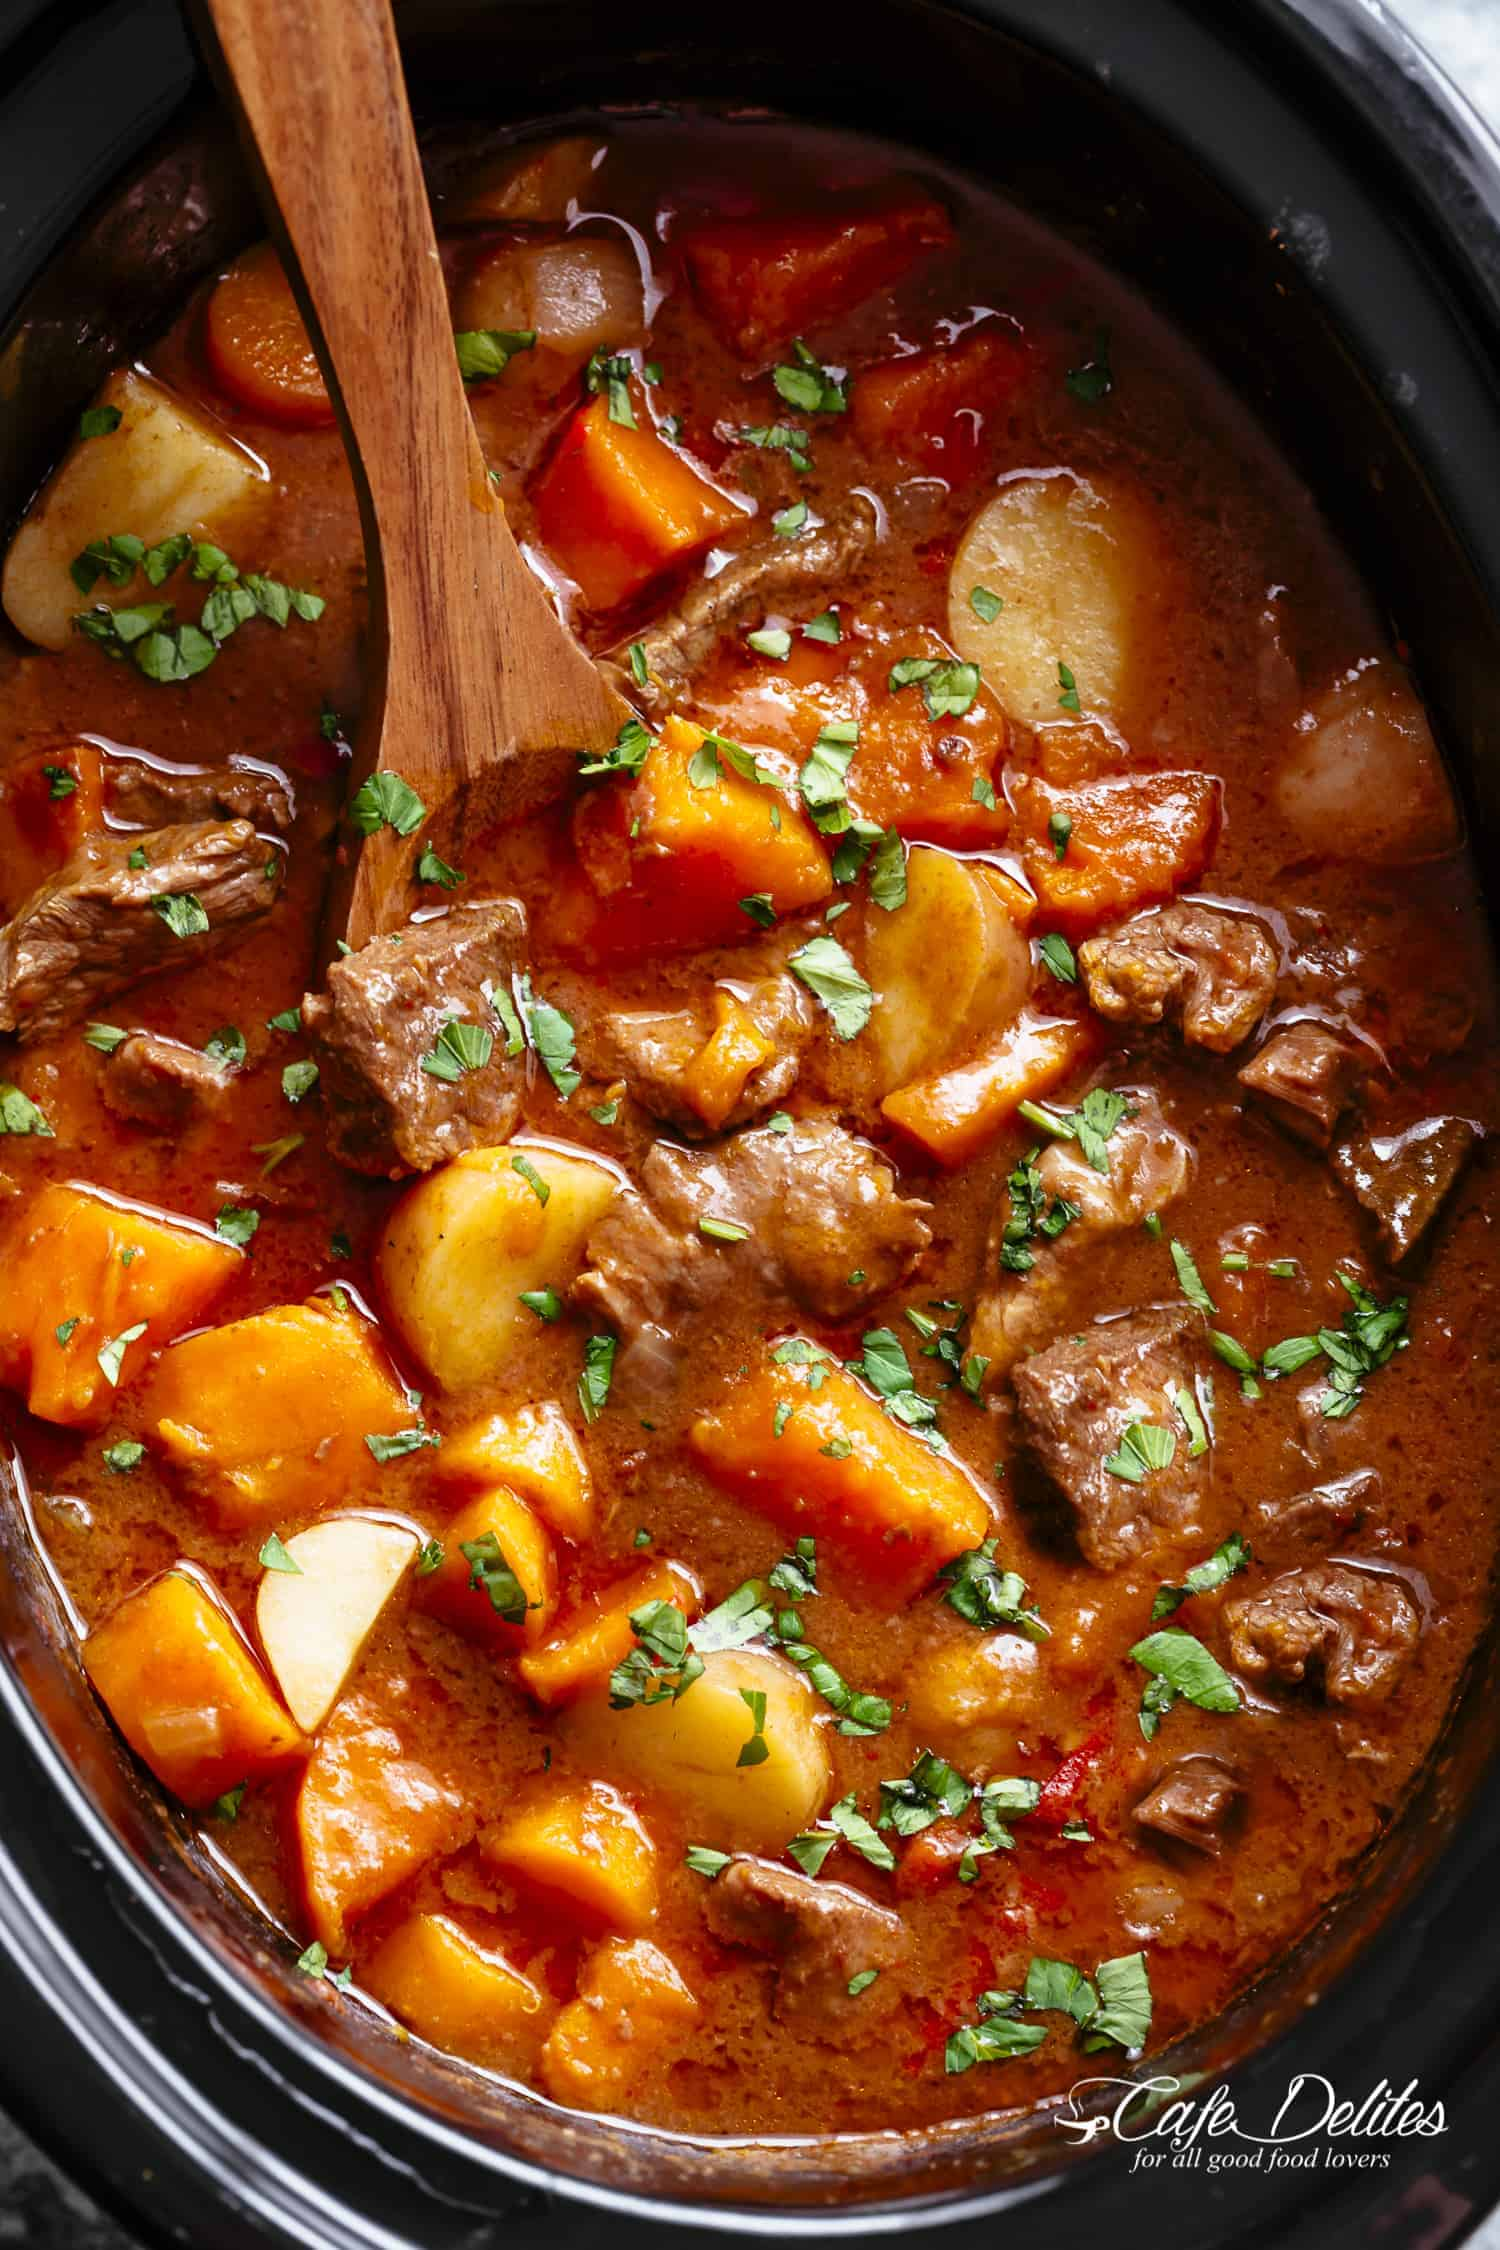 Slow Cooker Beef Stew Cafe Delites